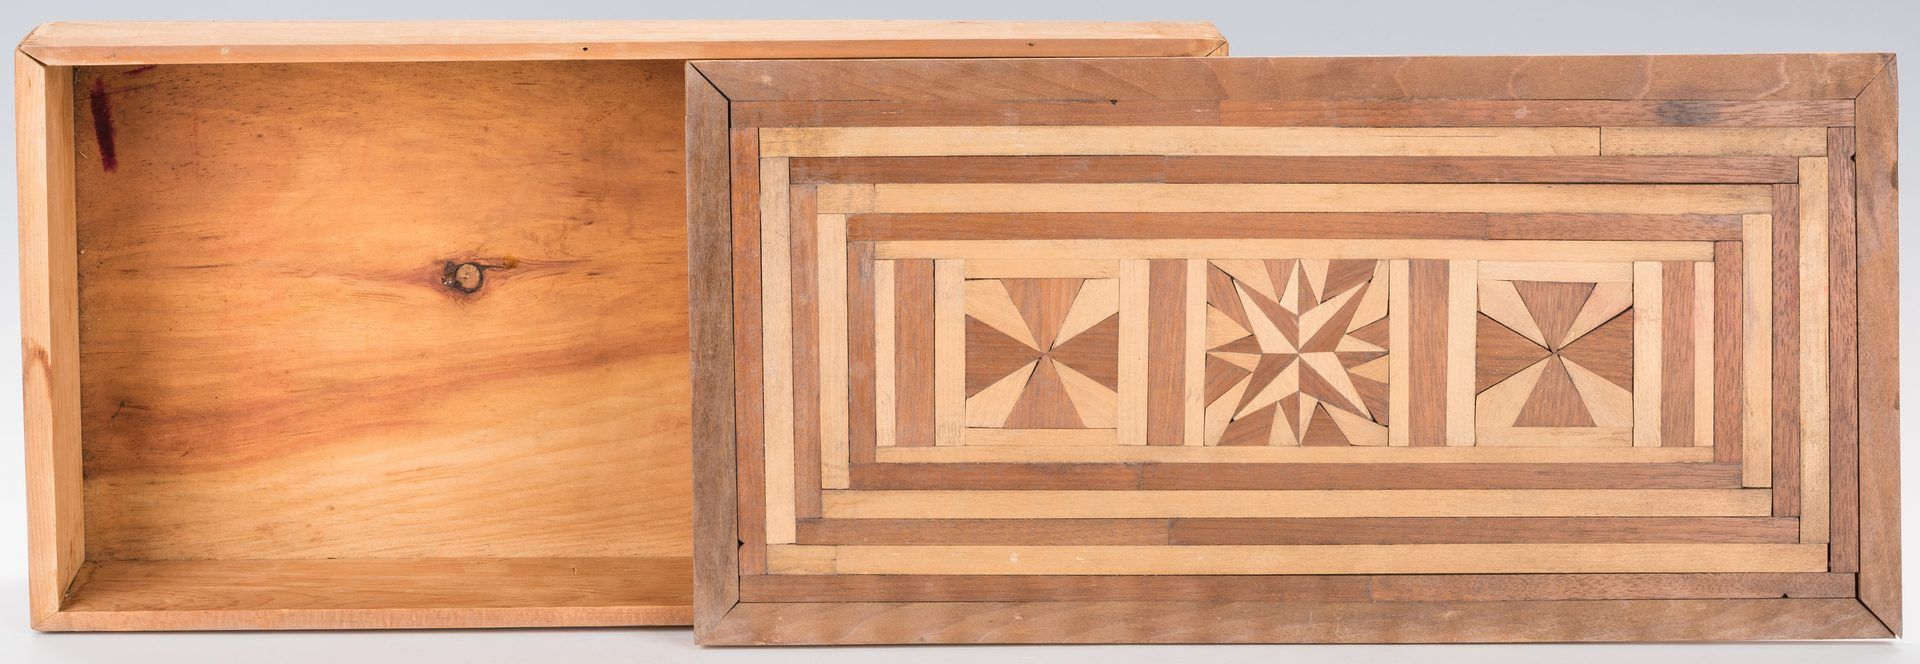 Lot 652: Tramp Folk Art Box w/ Crown of Thorns Cover